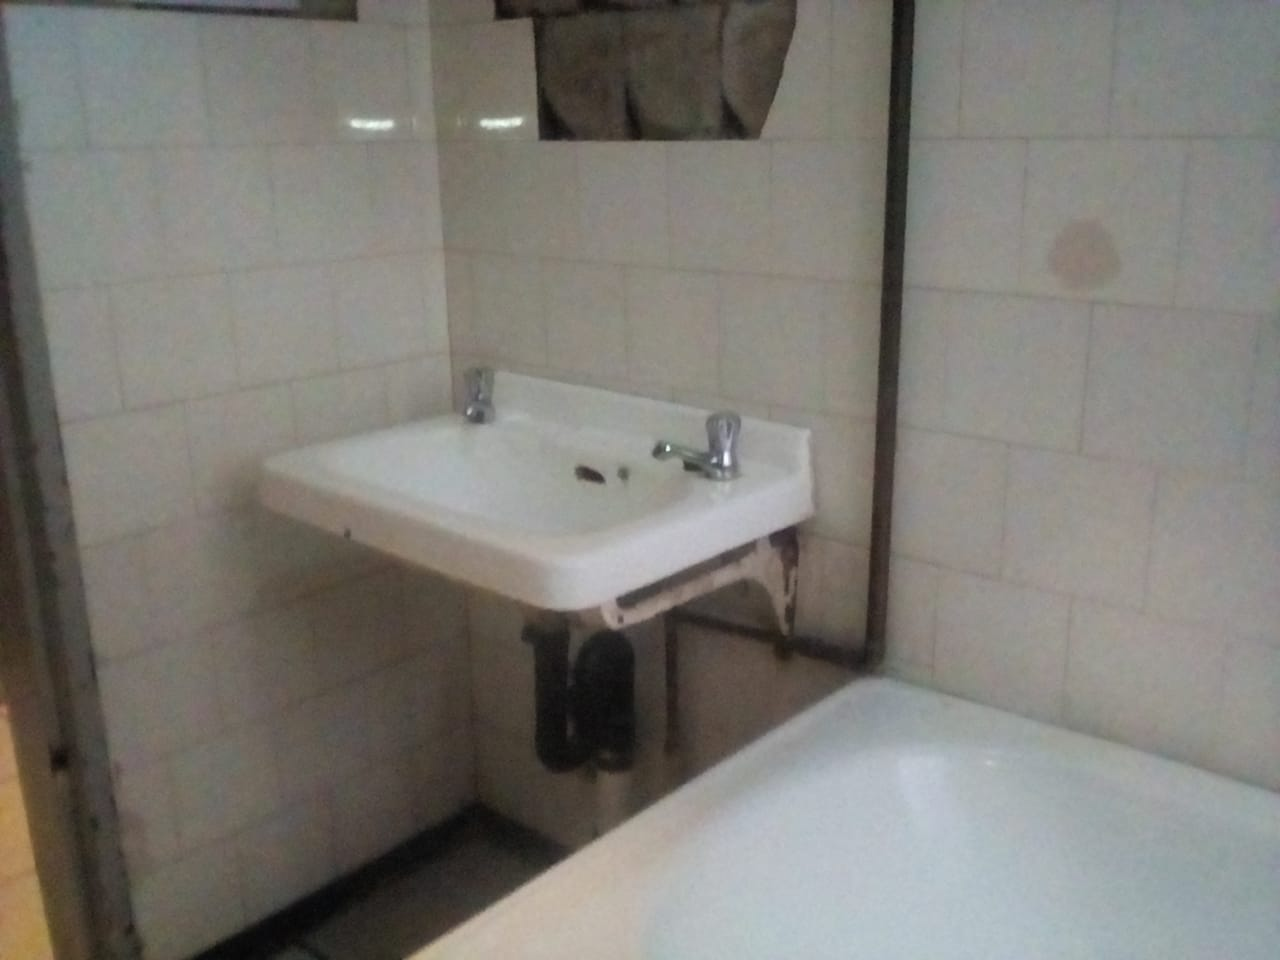 Apartment in Berea & Surrounds - WhatsApp Image 2021-07-21 at 5.37.51 PM (2).jpeg